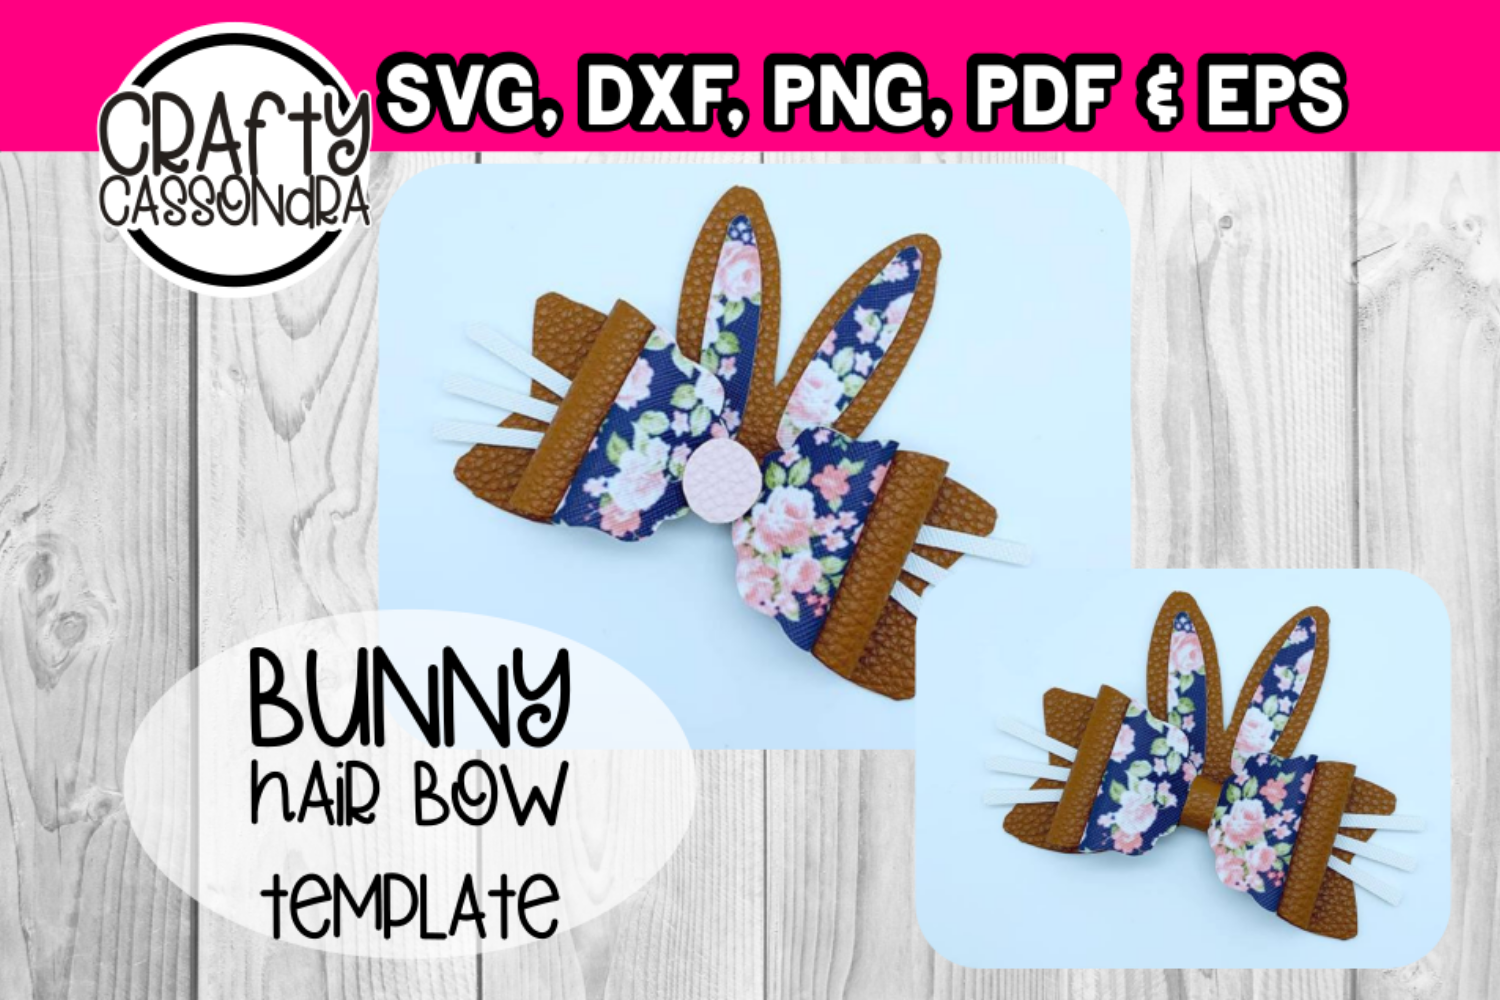 Hair bow - Faux leather diy project Bunny ear hair bows - example image 1